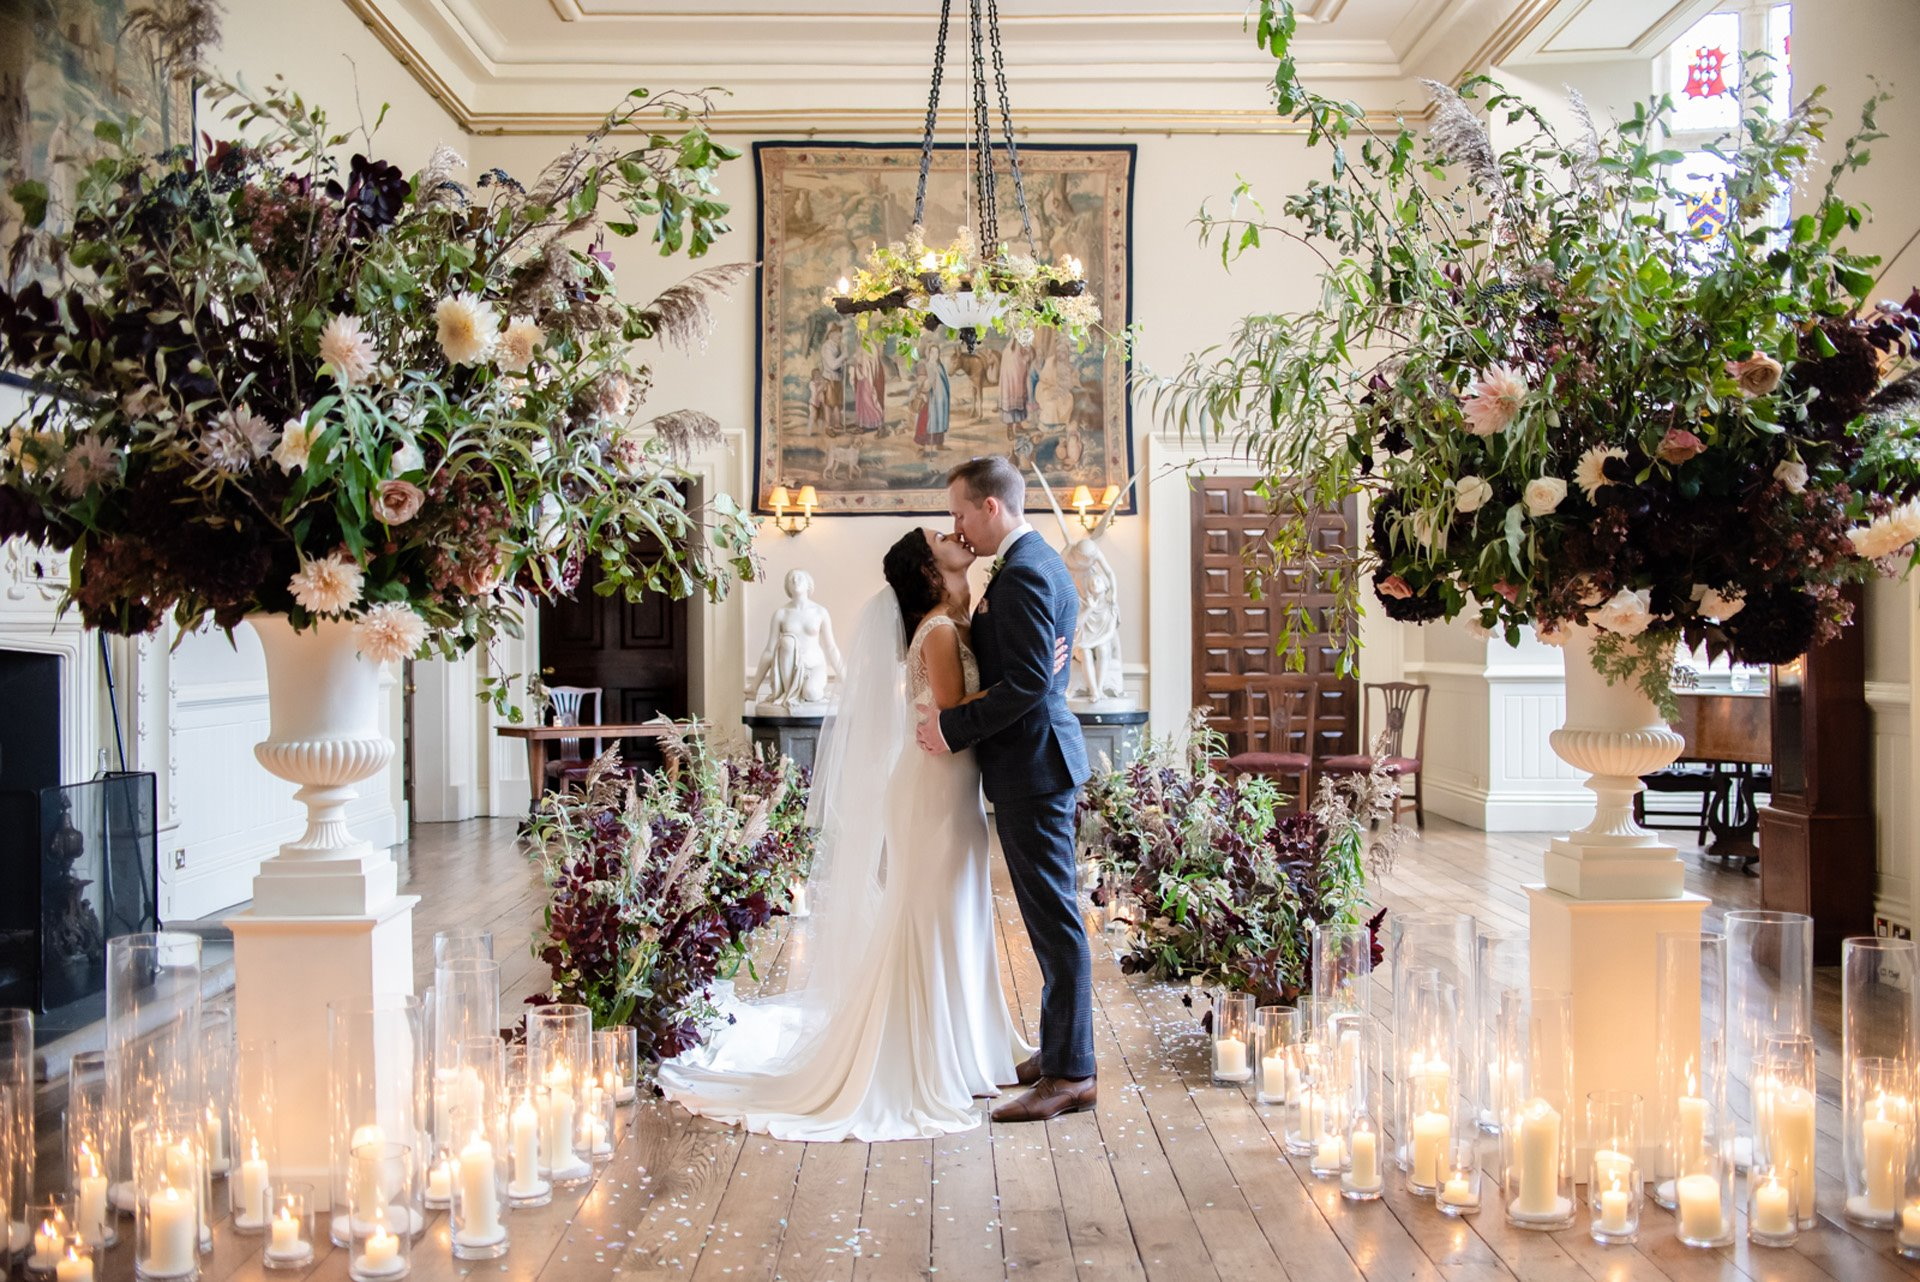 Bride and groom kiss at their micro wedding with mega styling surrounded by candles, foliage and flowers